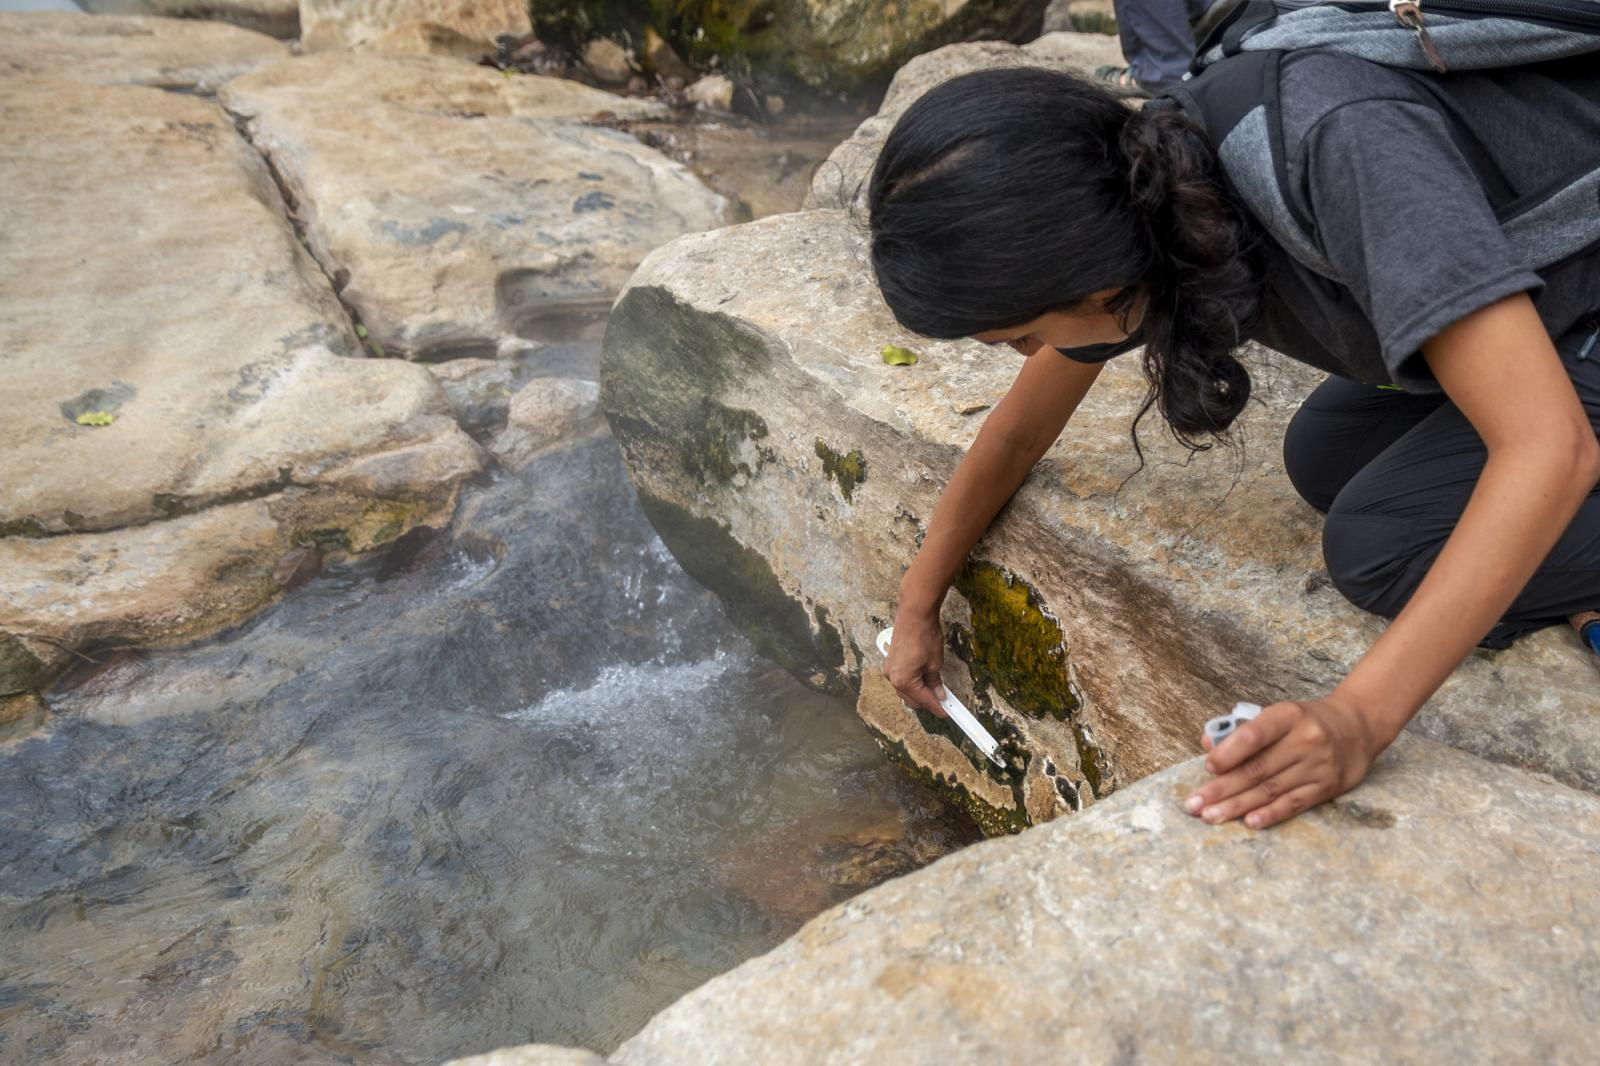 Rosa Vasquez collects samples from the Boiling River